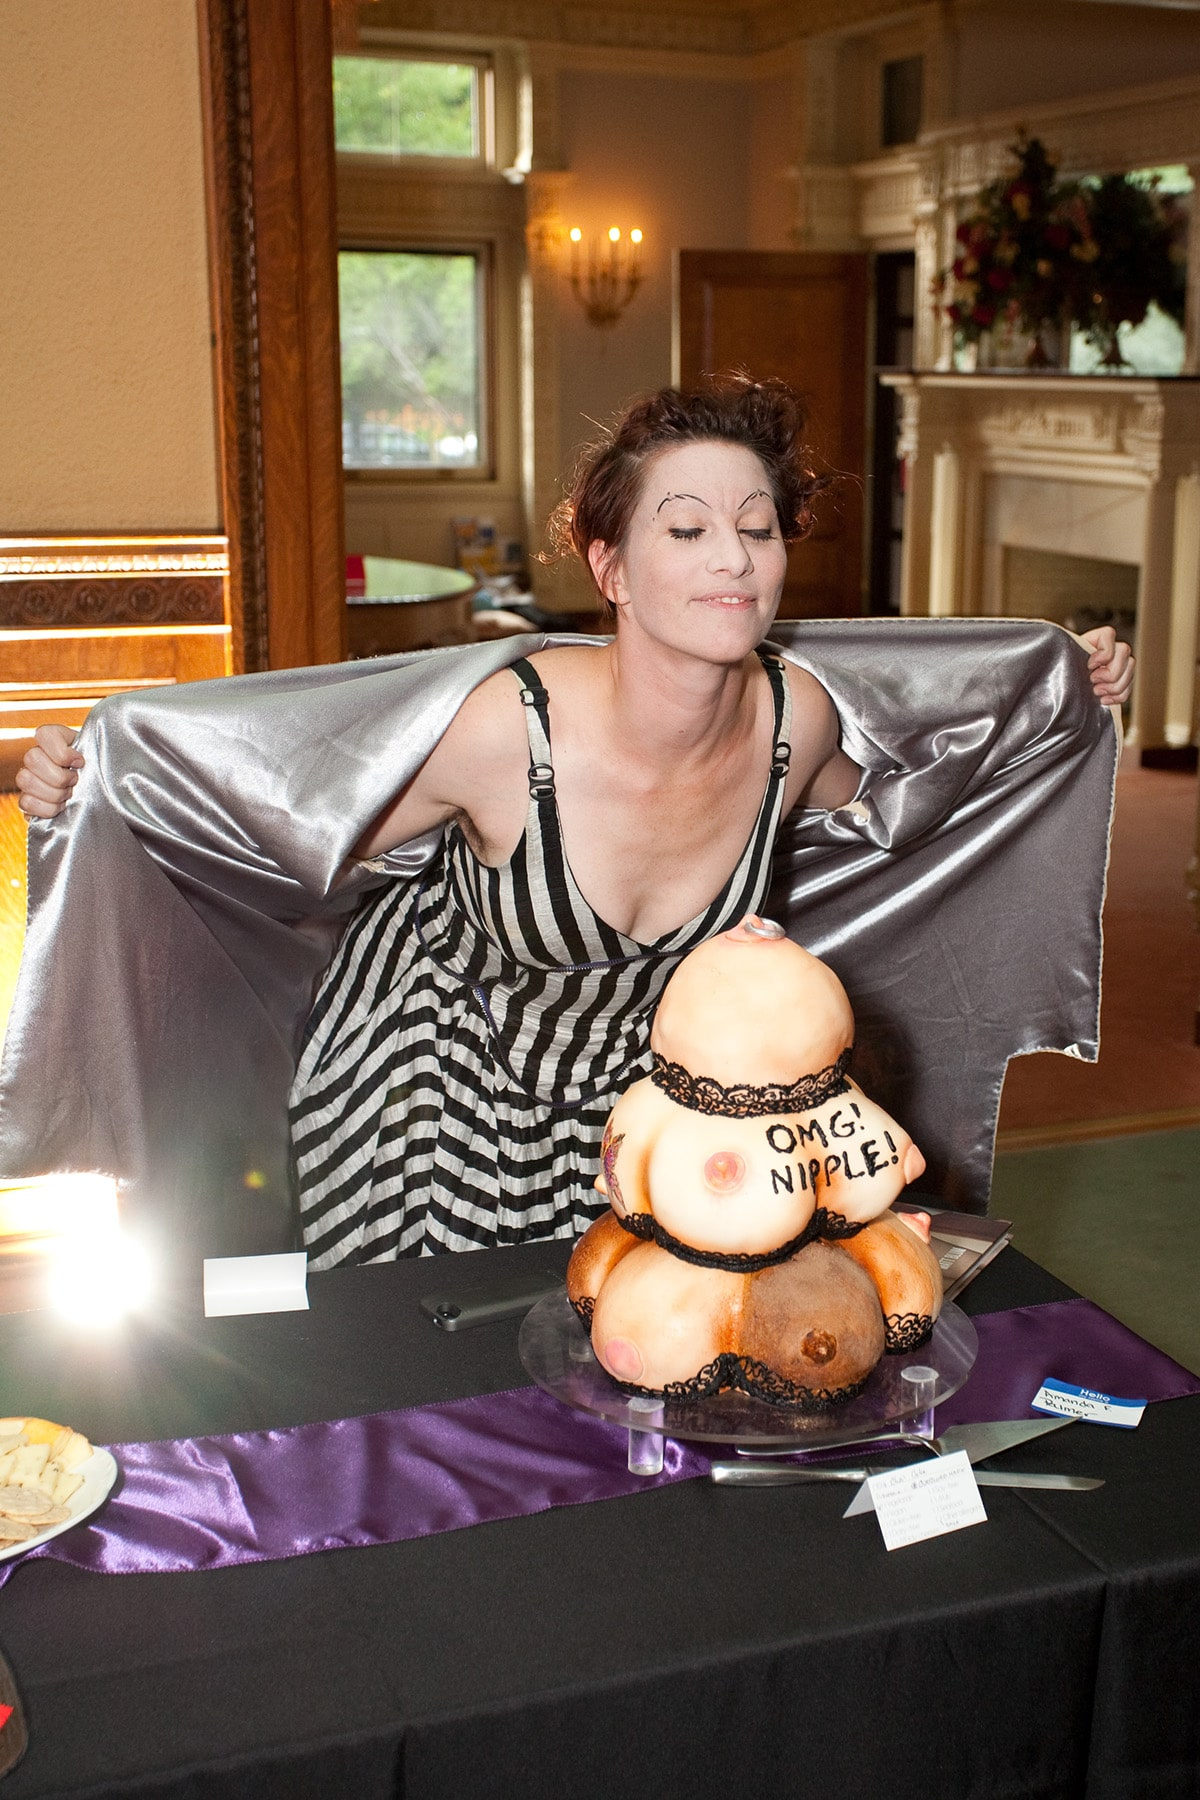 Amanda Palmer standing behind a cake that looks like a pile of breasts.